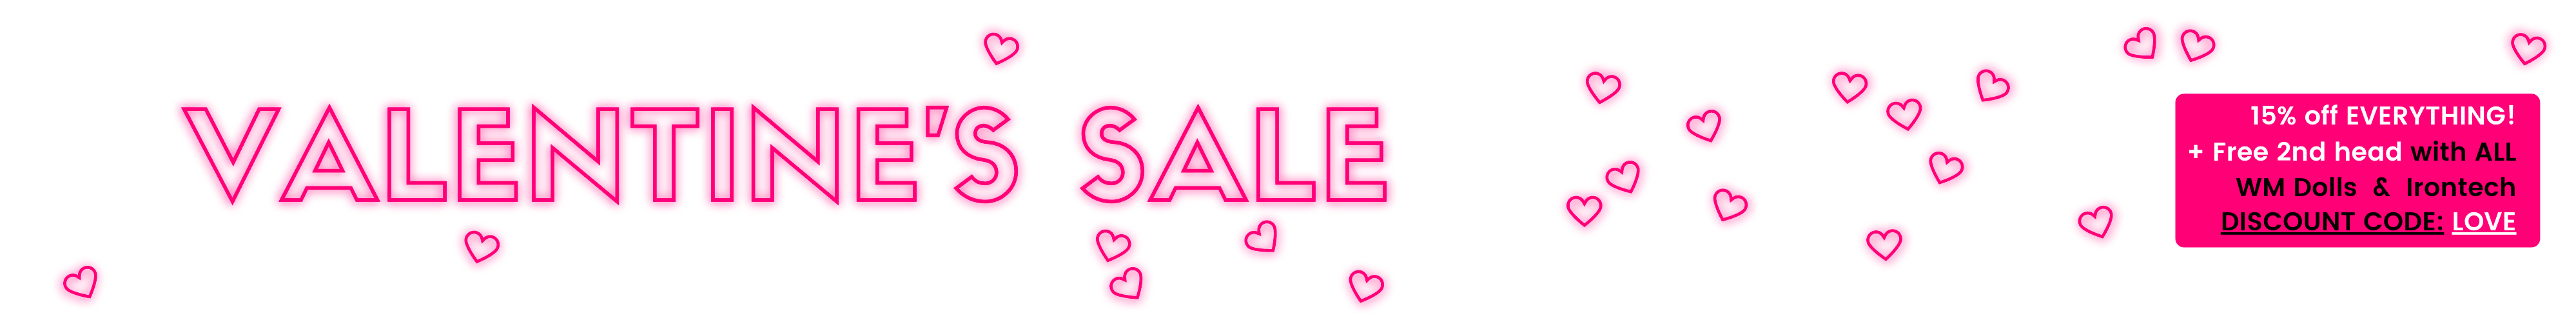 Silicone Lovers Flash Sale